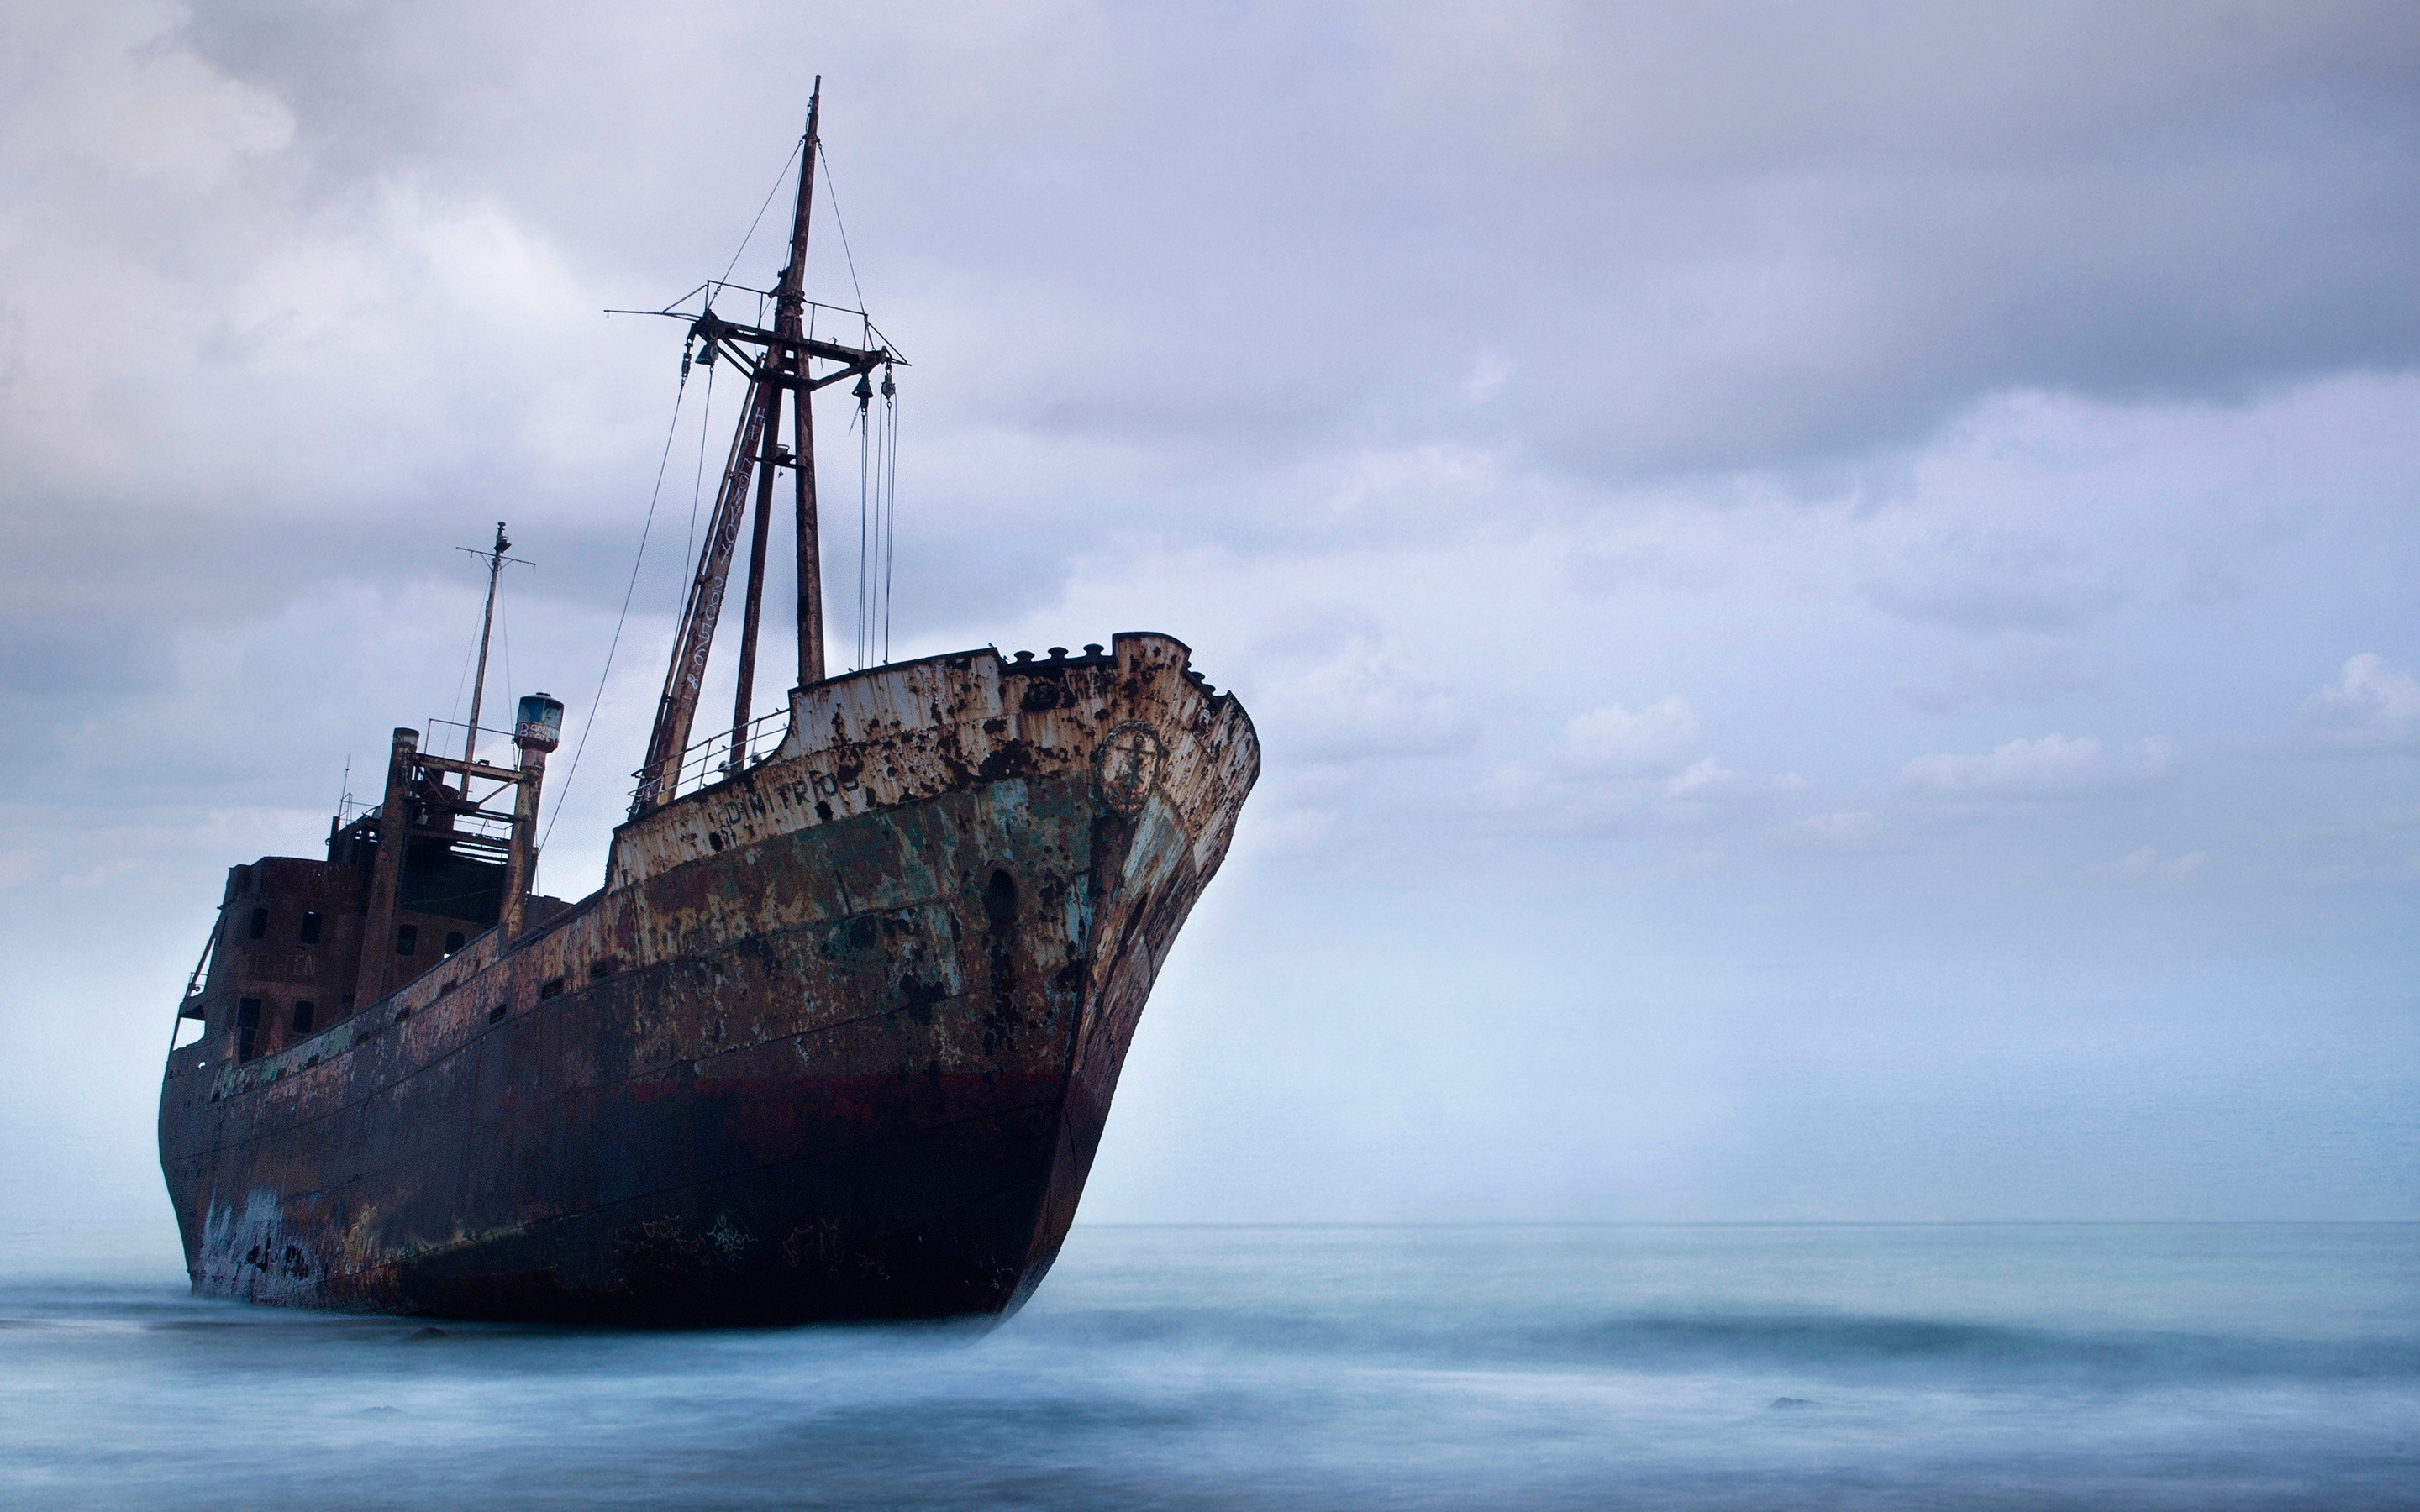 Abandoned shipwreck hd Wallpaper in 2880x1800 Retina 15''